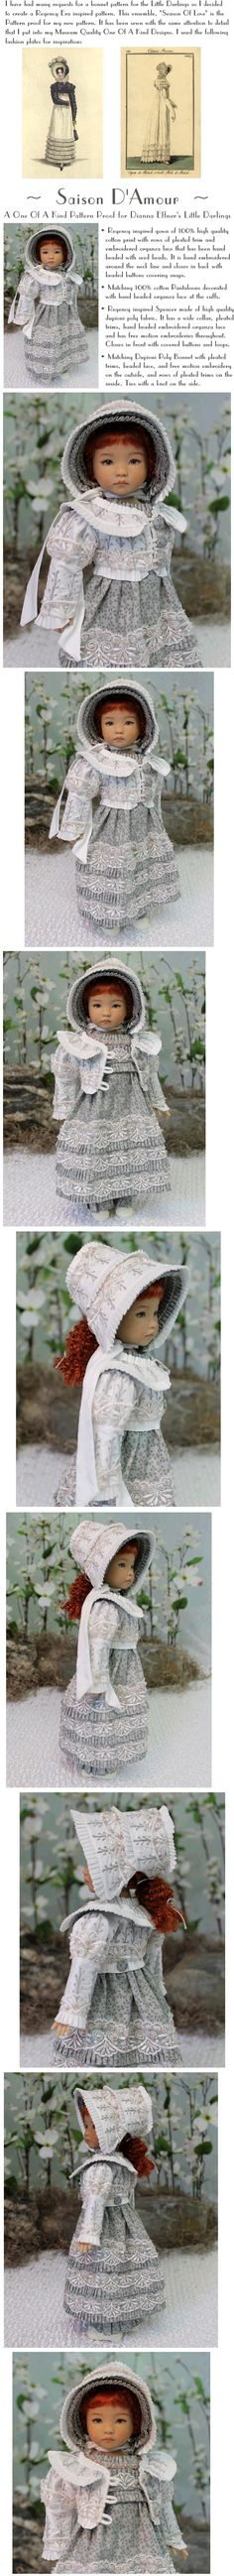 """Saison D'Amour"" by MHD, pattern proof for Little Darling outfit. Auction ends 3/31/14. Sold for $745.00"